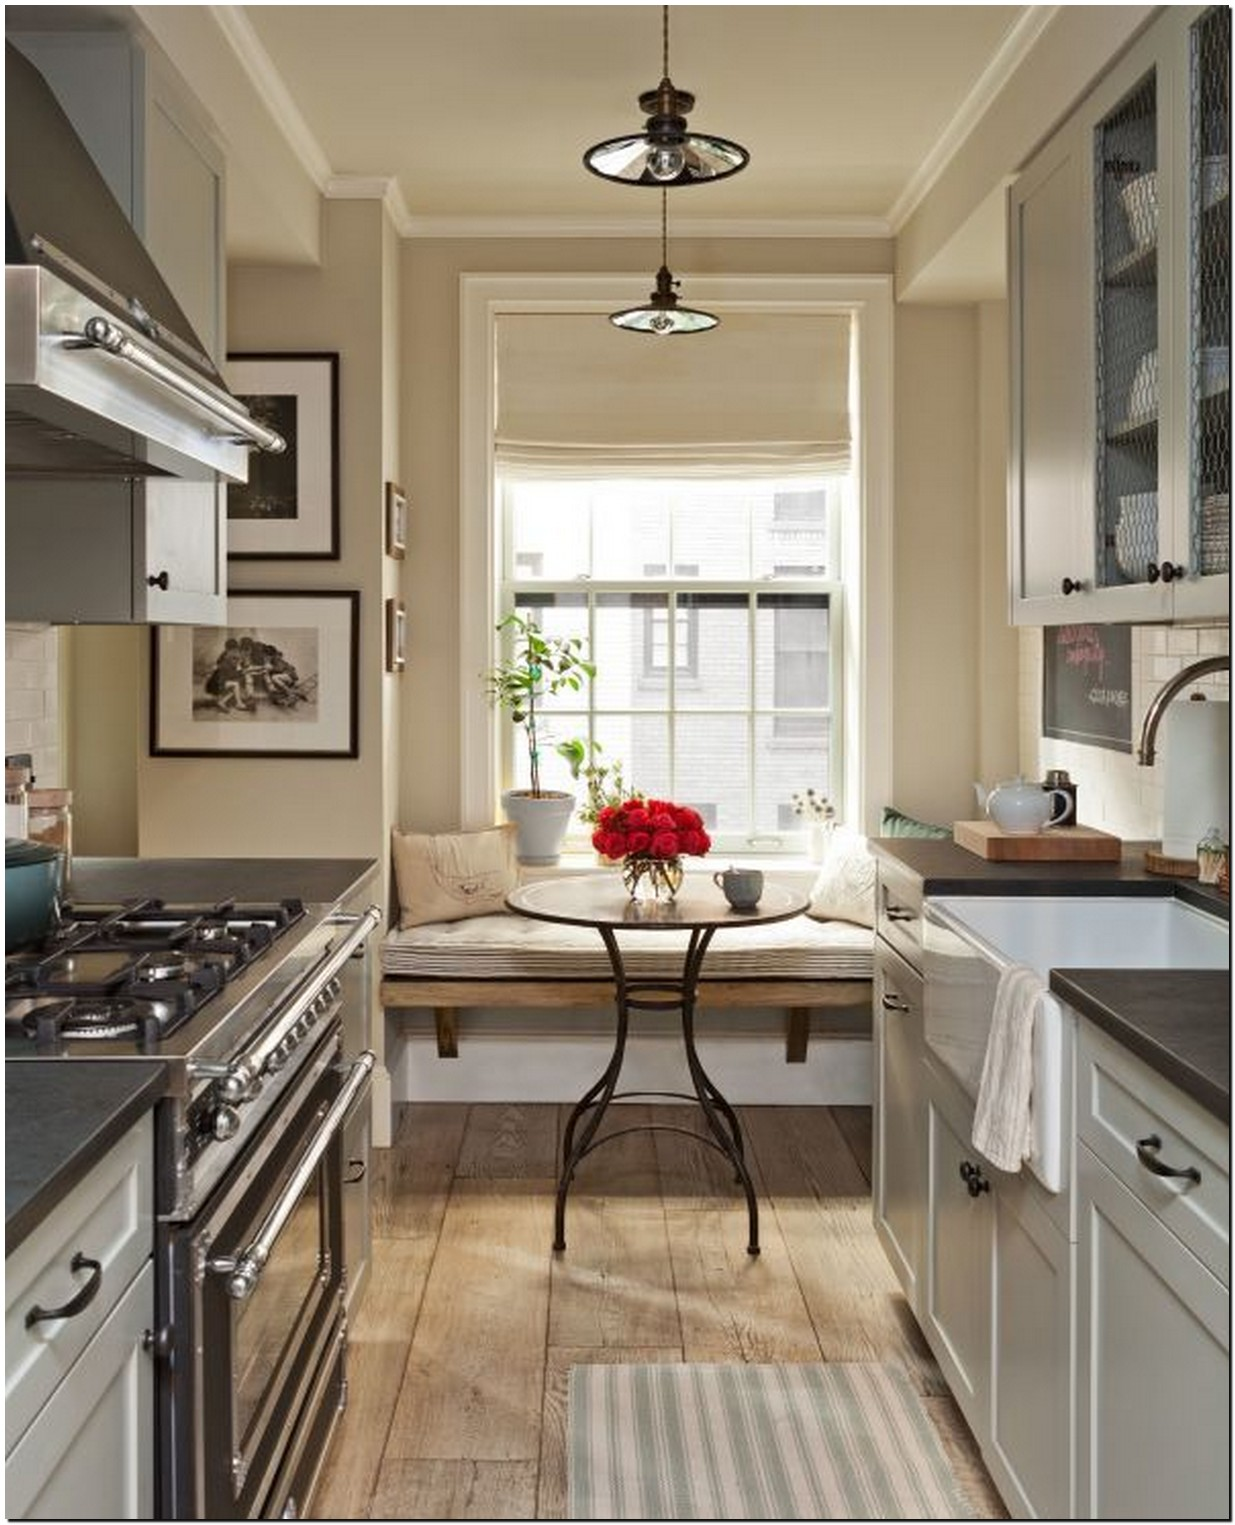 50 extraordinary ideas for remodeling the kitchen for the modern season 29